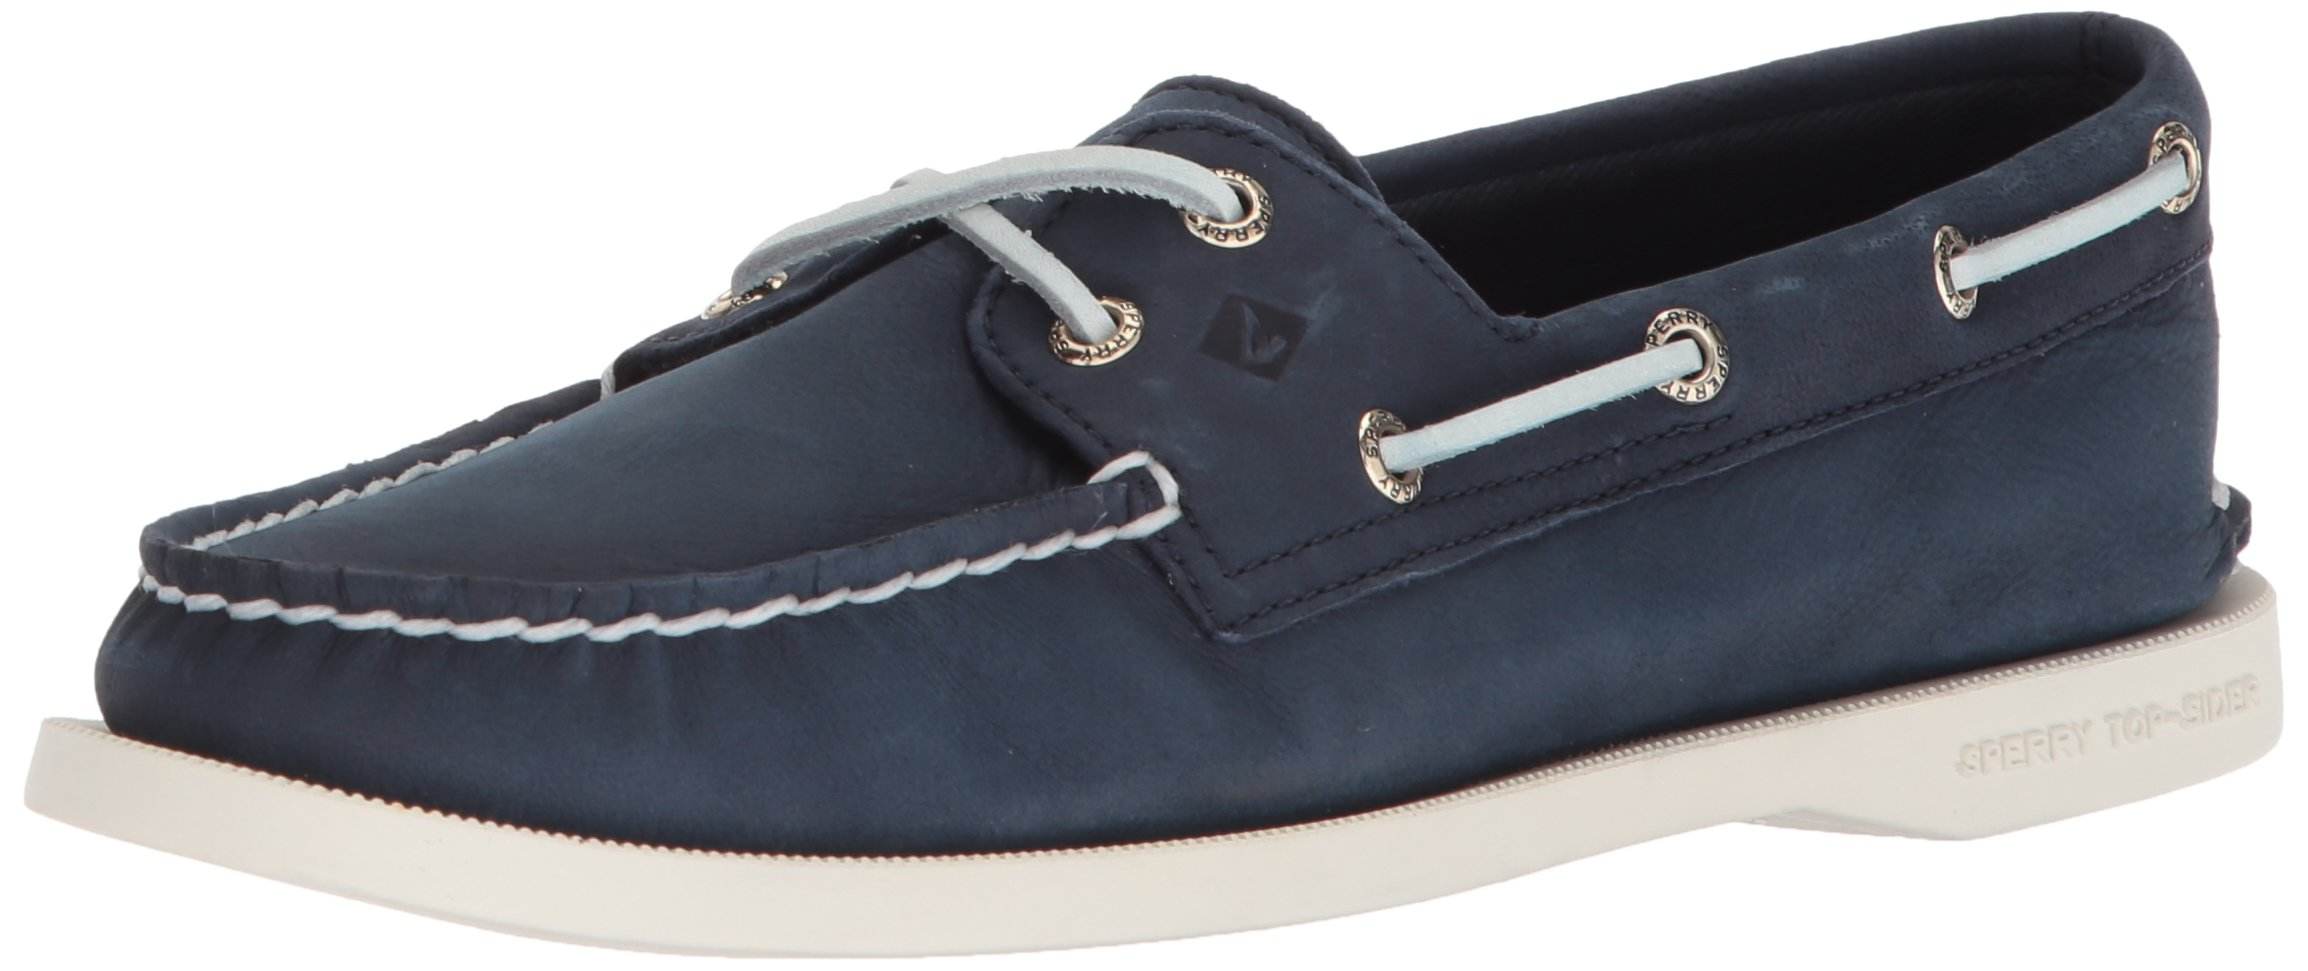 Sperry Top-Sider Women's a/O 2-Eye Boat Shoe, Navy, 6.5 Wide US by Sperry Top-Sider